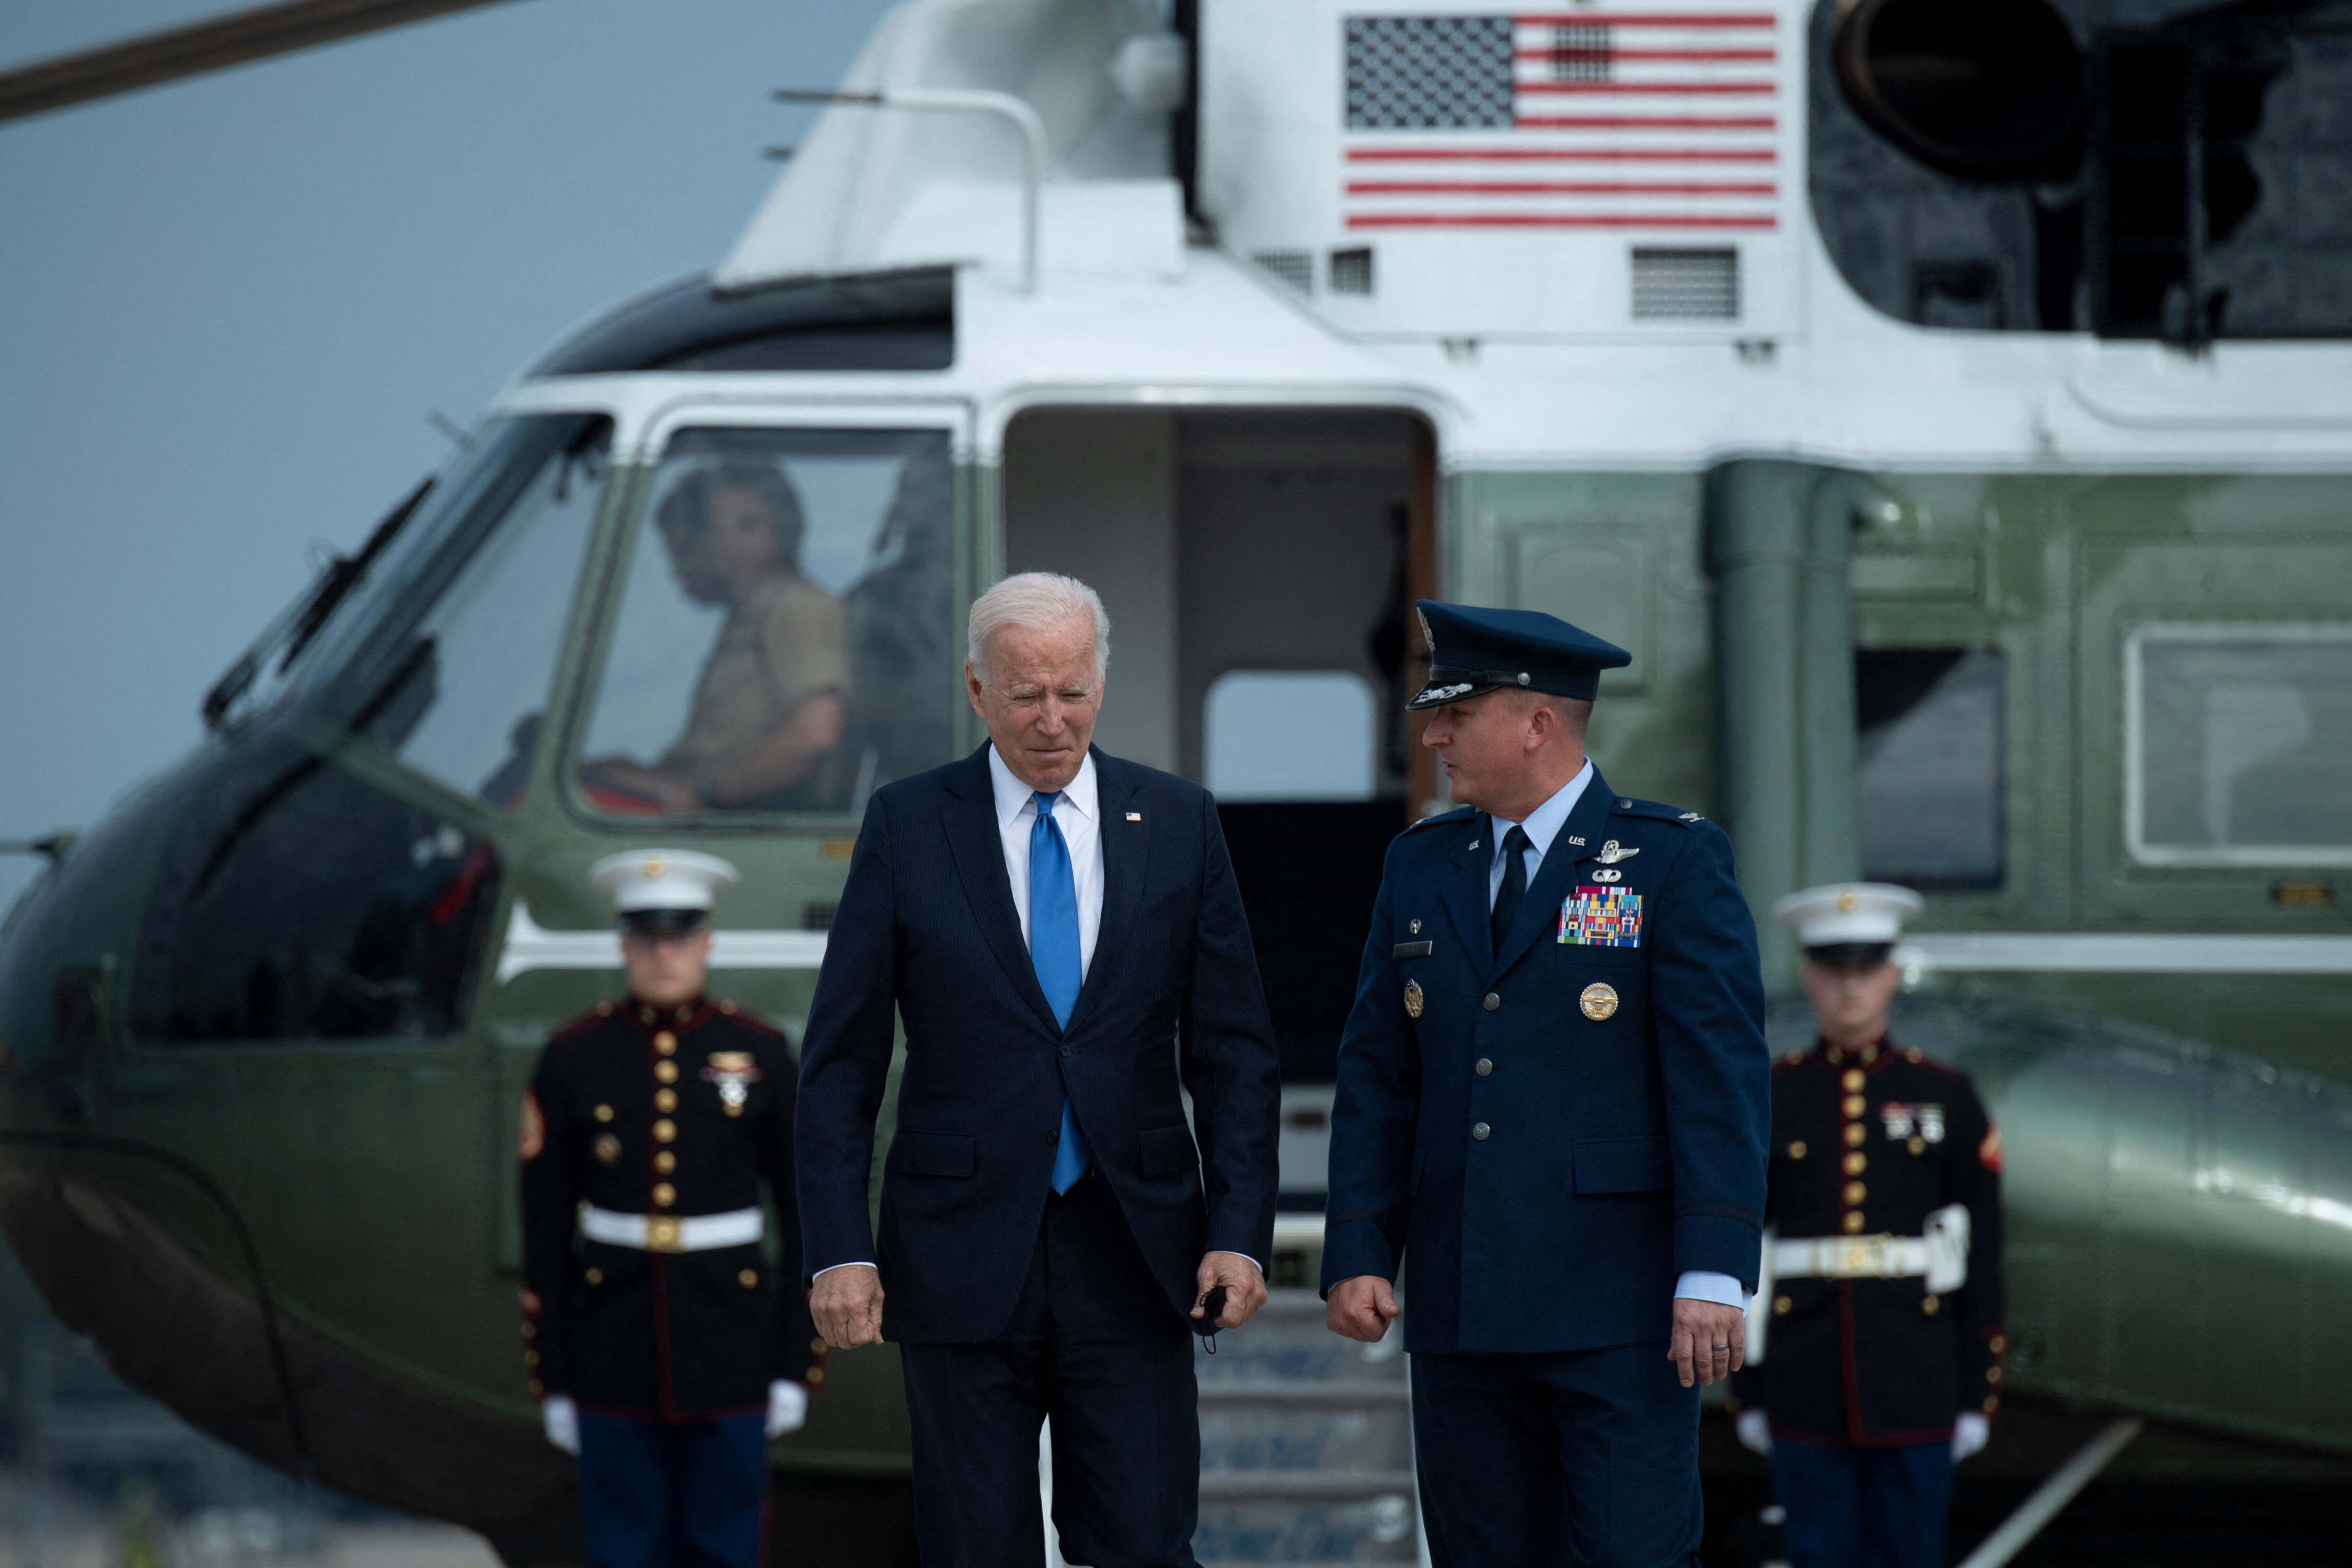 5 things to watch for CNN's Biden town hall in Baltimore